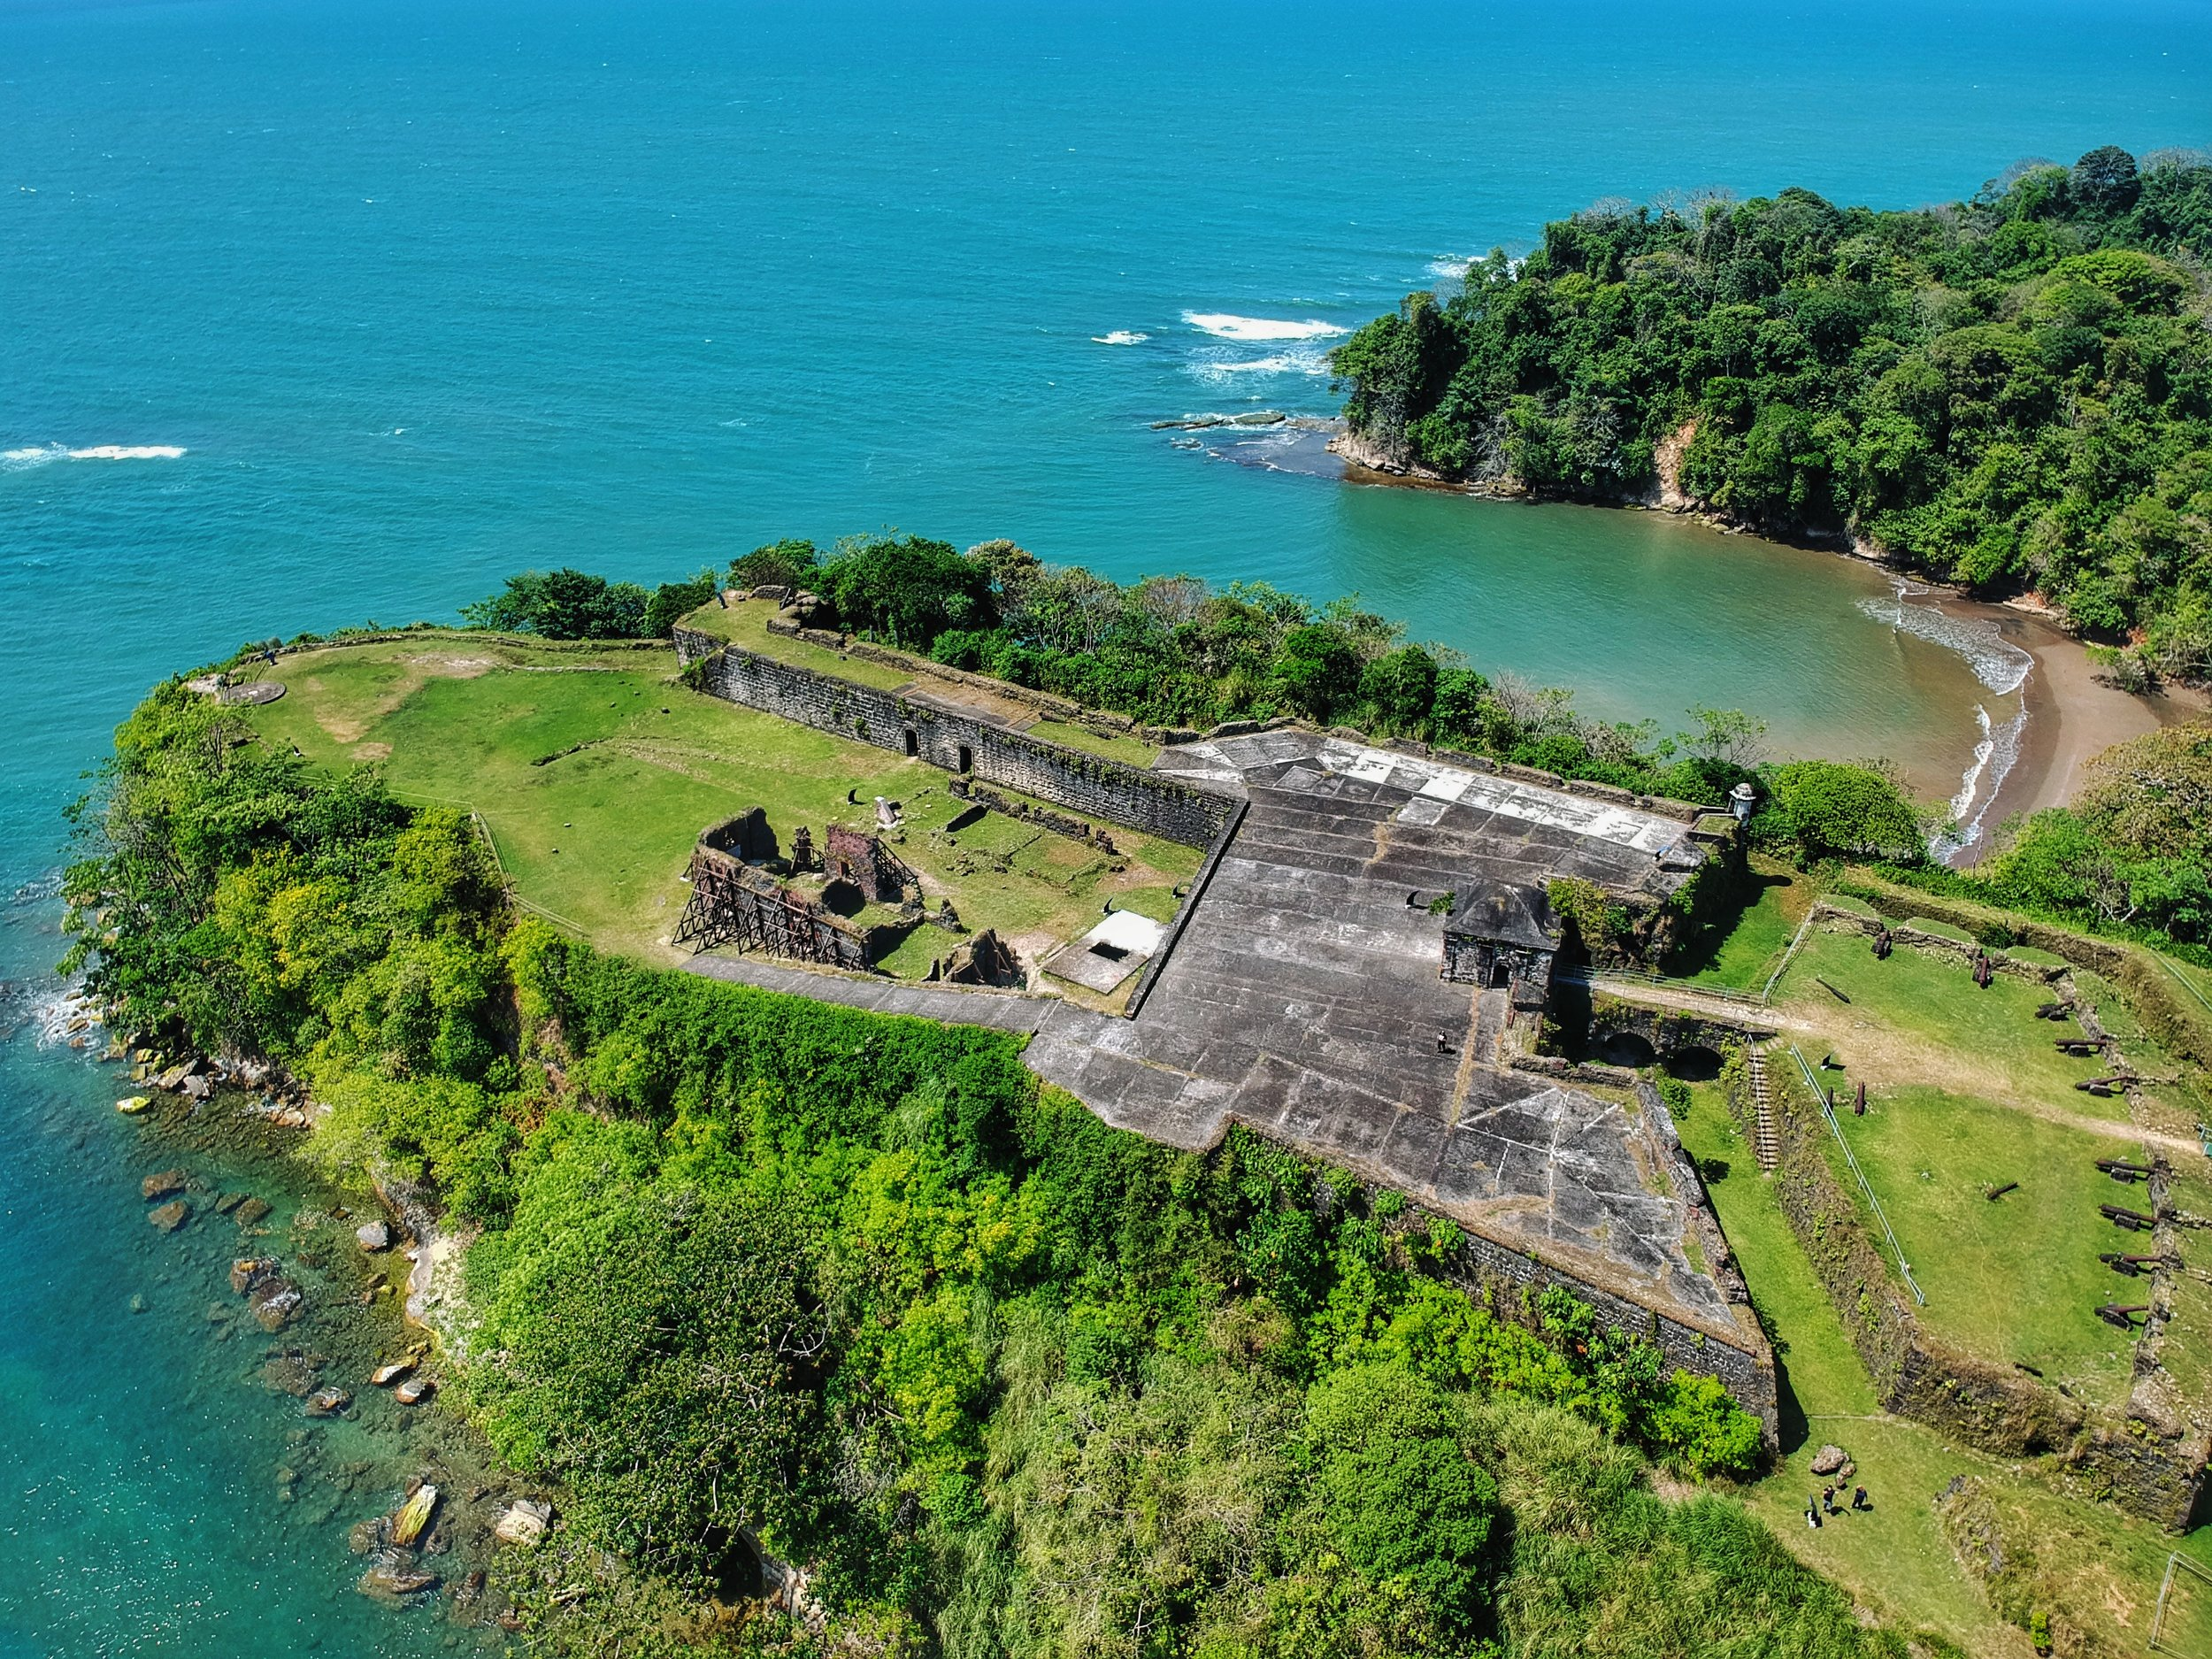 Chagres Fort